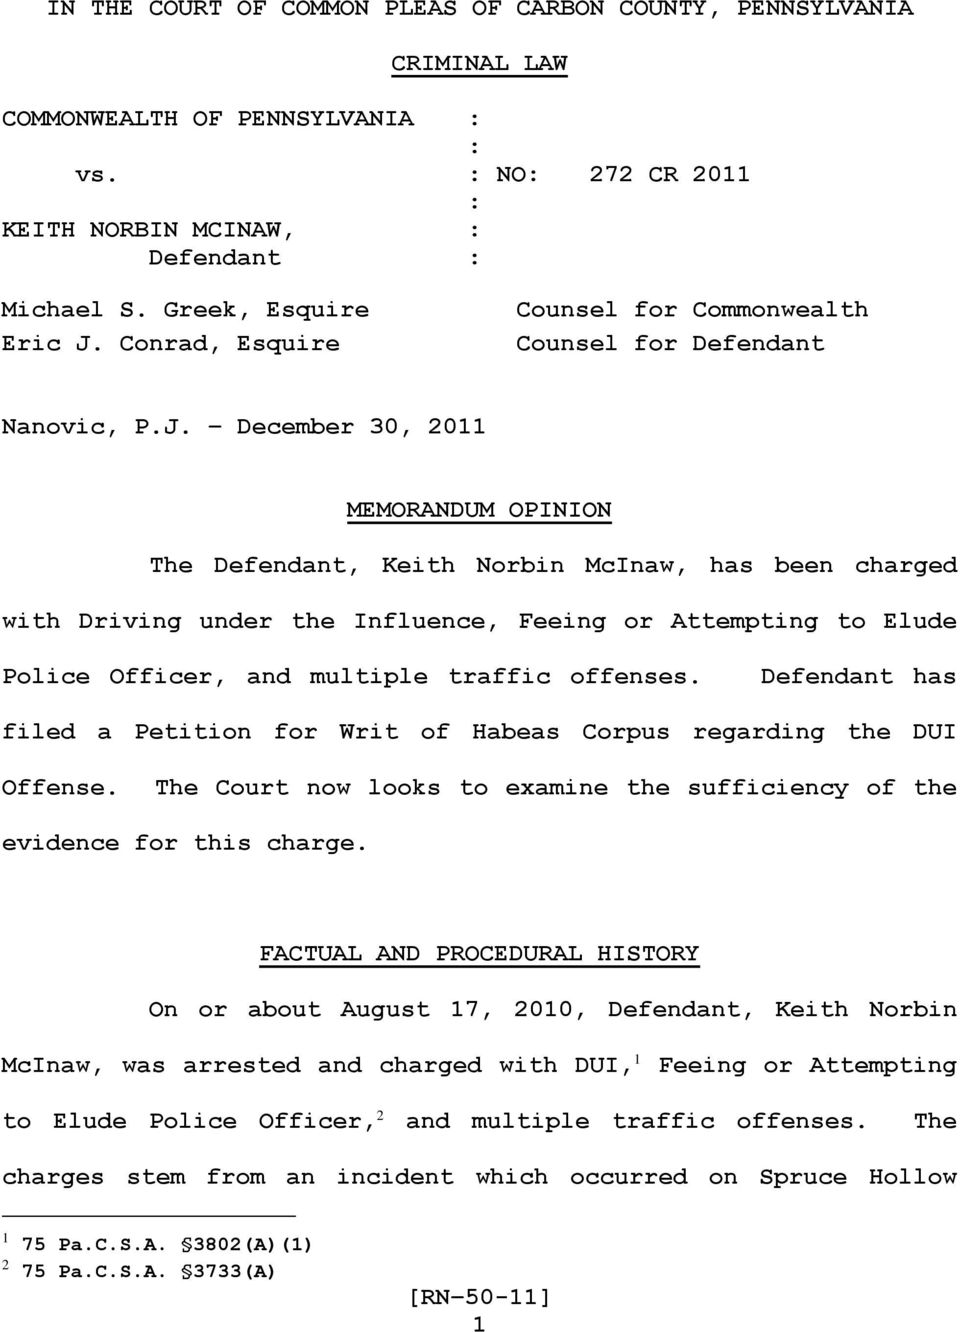 December 30, 2011 MEMORANDUM OPINION The Defendant, Keith Norbin McInaw, has been charged with Driving under the Influence, Feeing or Attempting to Elude Police Officer, and multiple traffic offenses.